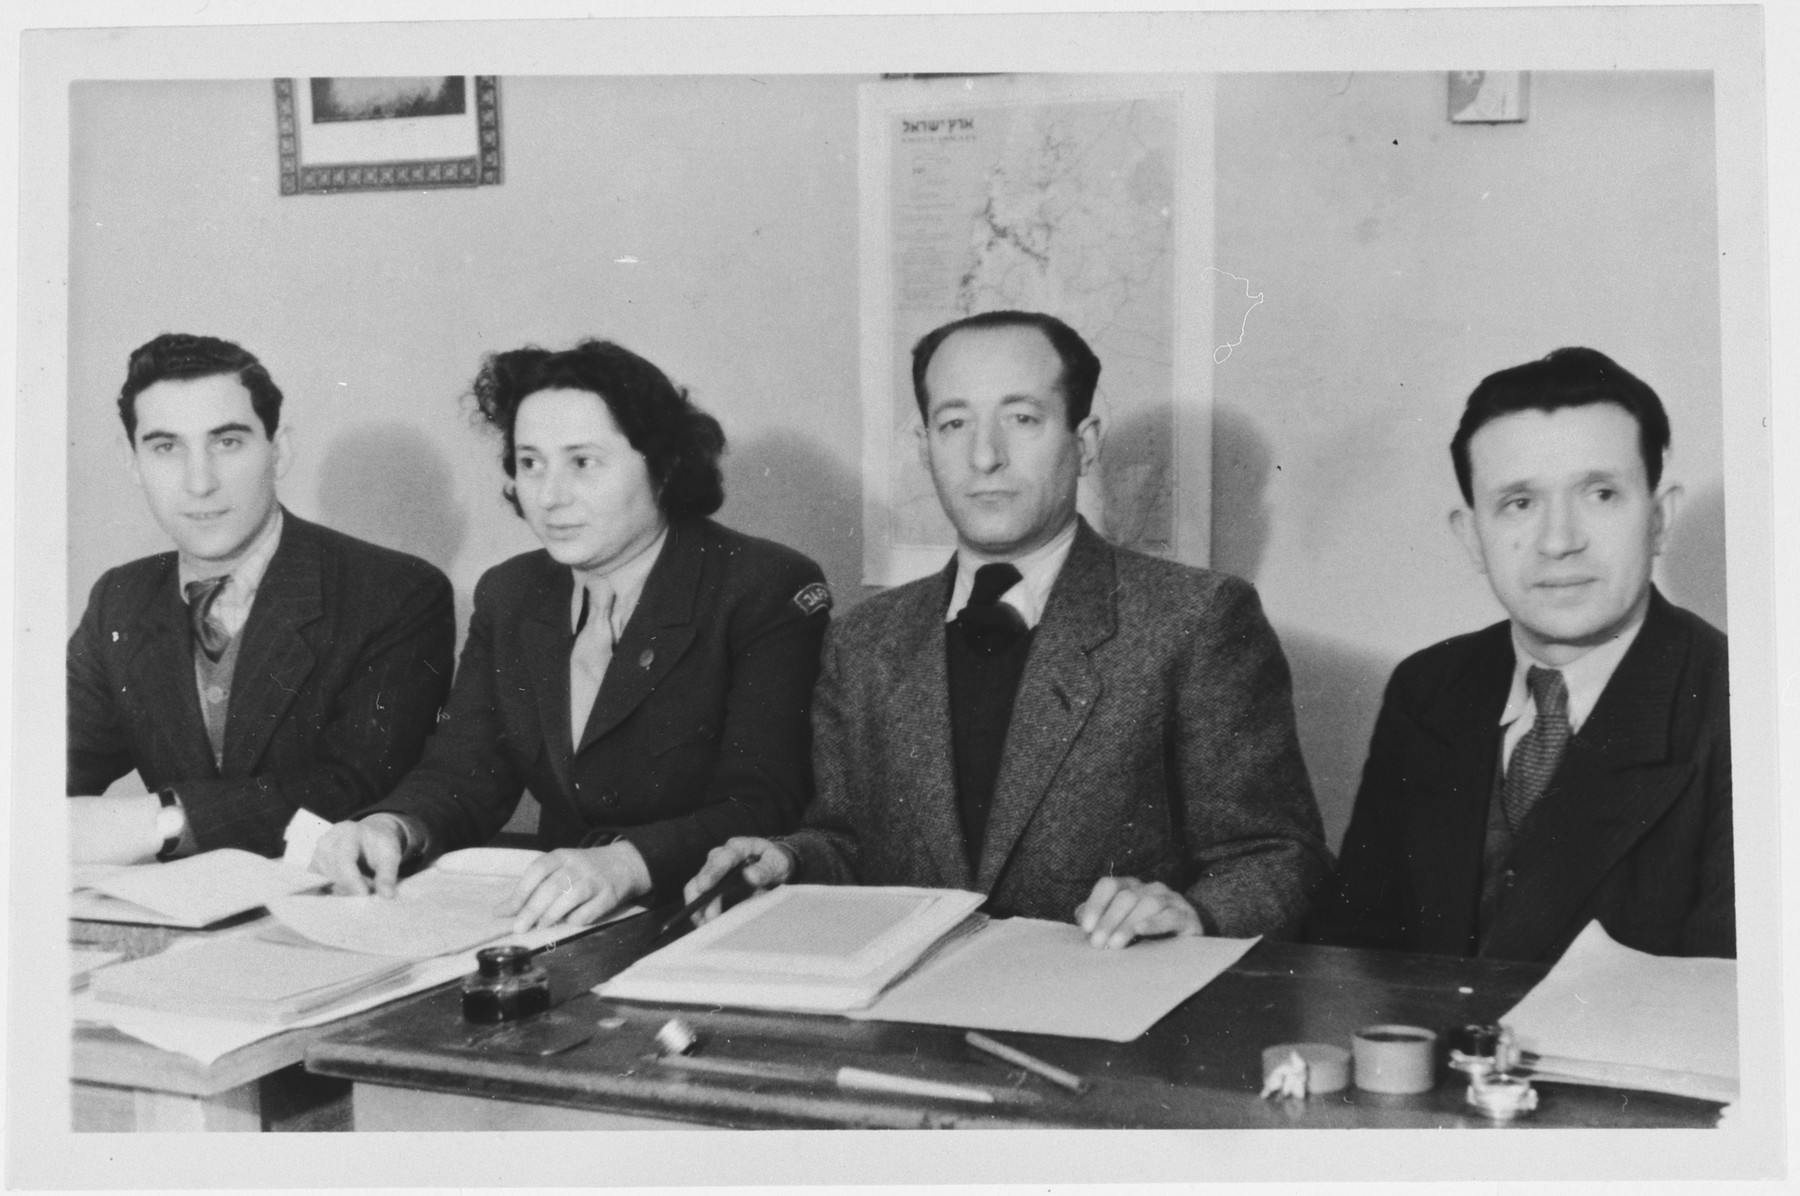 A female JDC aid worker and three men pose behind their desks in front of a map of Israel in the Zeilsheim displaced persons' camp.